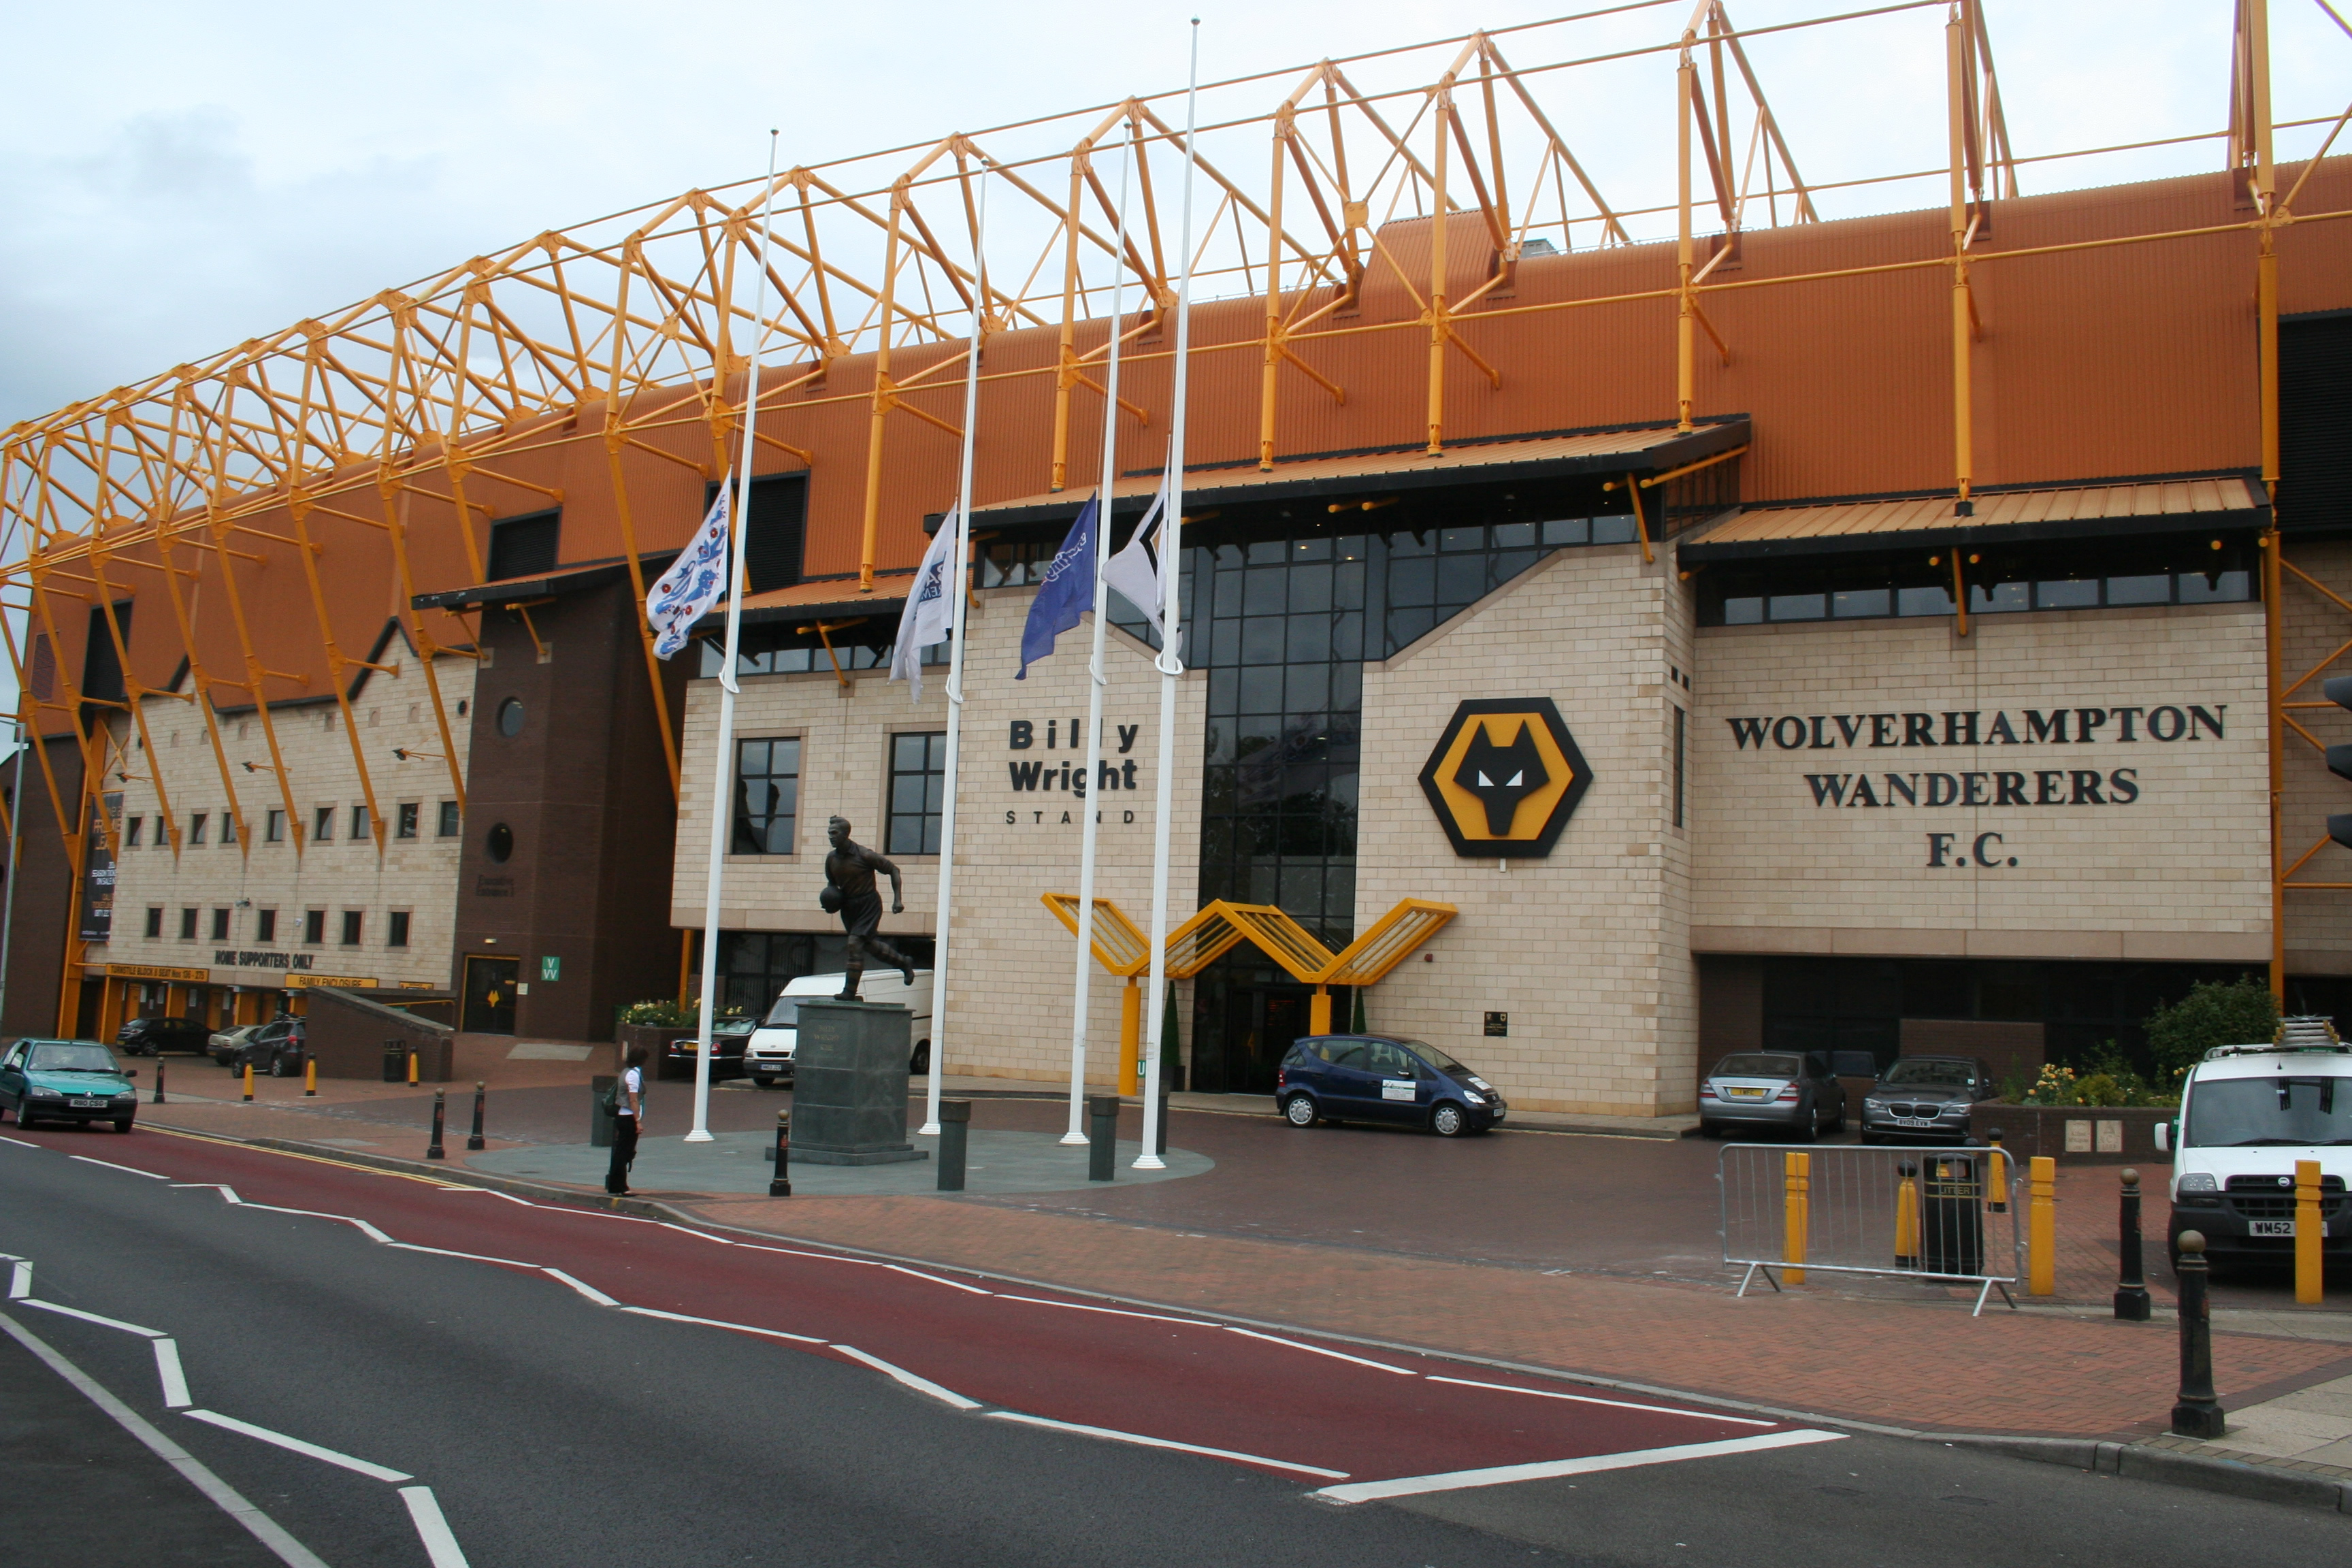 Wolverhampton Wanderers Football Club Lgm Limited